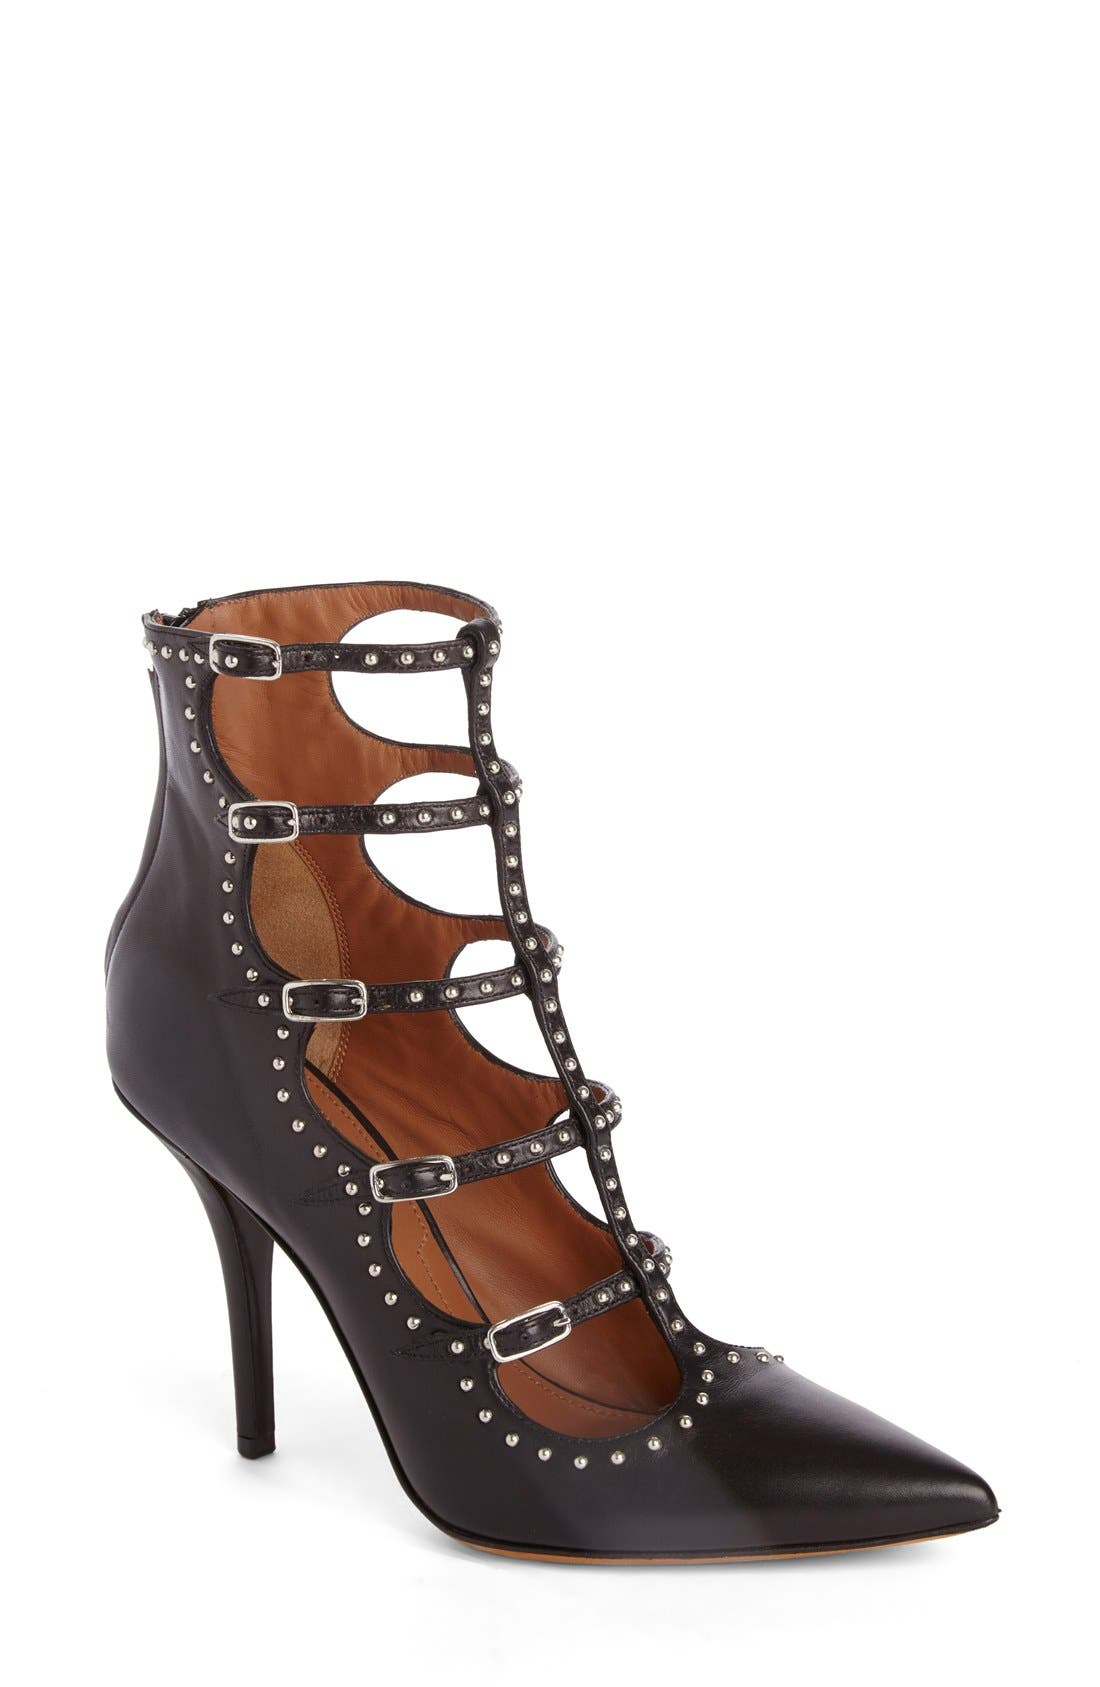 Alternate Image 1 Selected - Givenchy Elegant Cage Pump (Women)